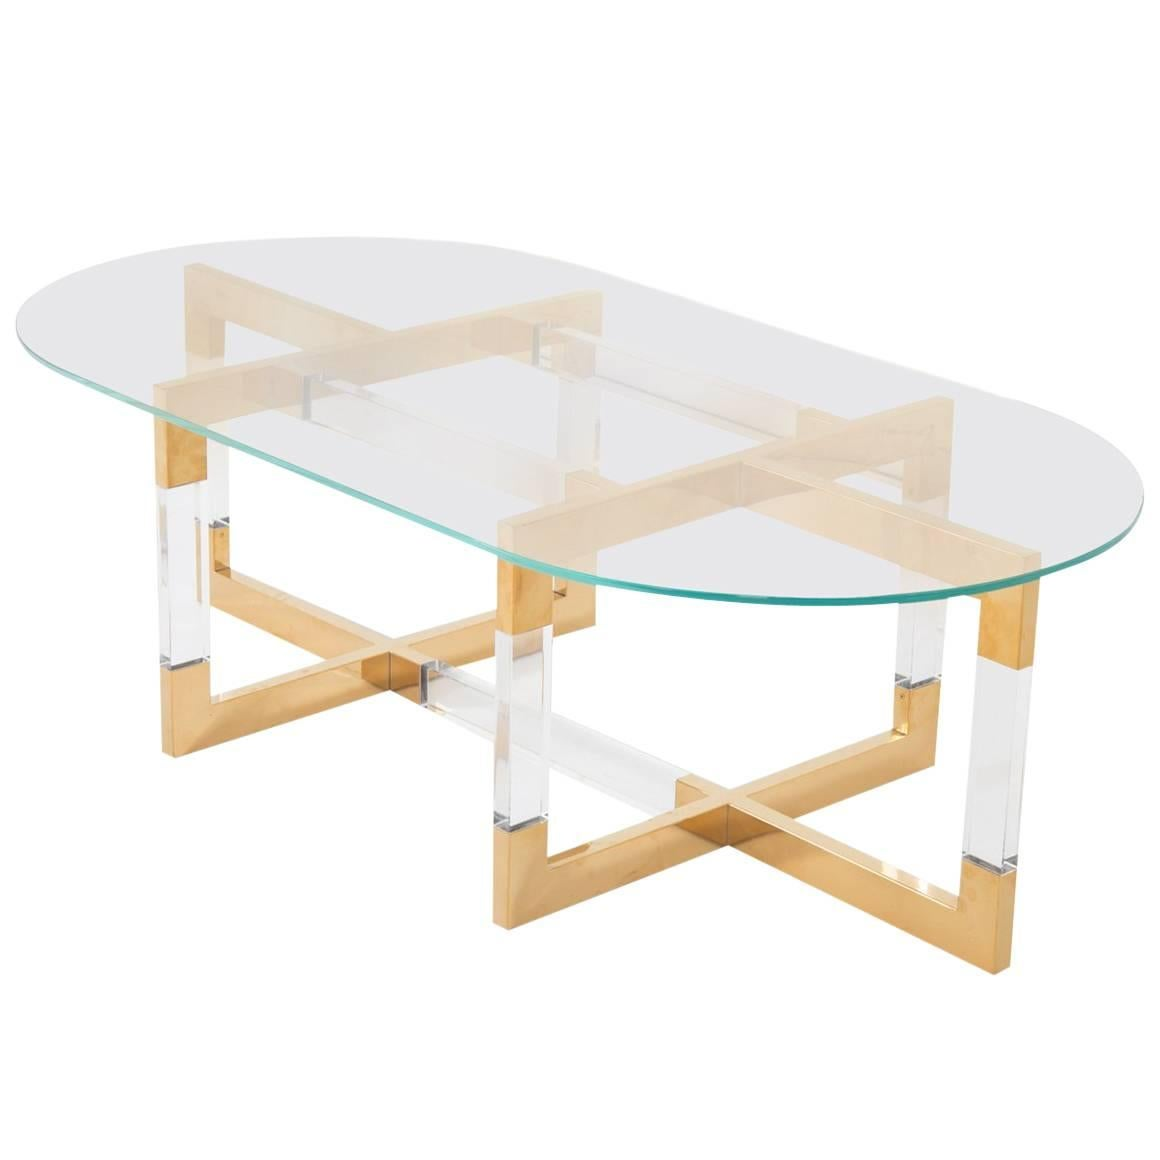 Modern Oval Coffee Table In Brass, Lucite U0026 Glass With Geometric Crisscross  Base